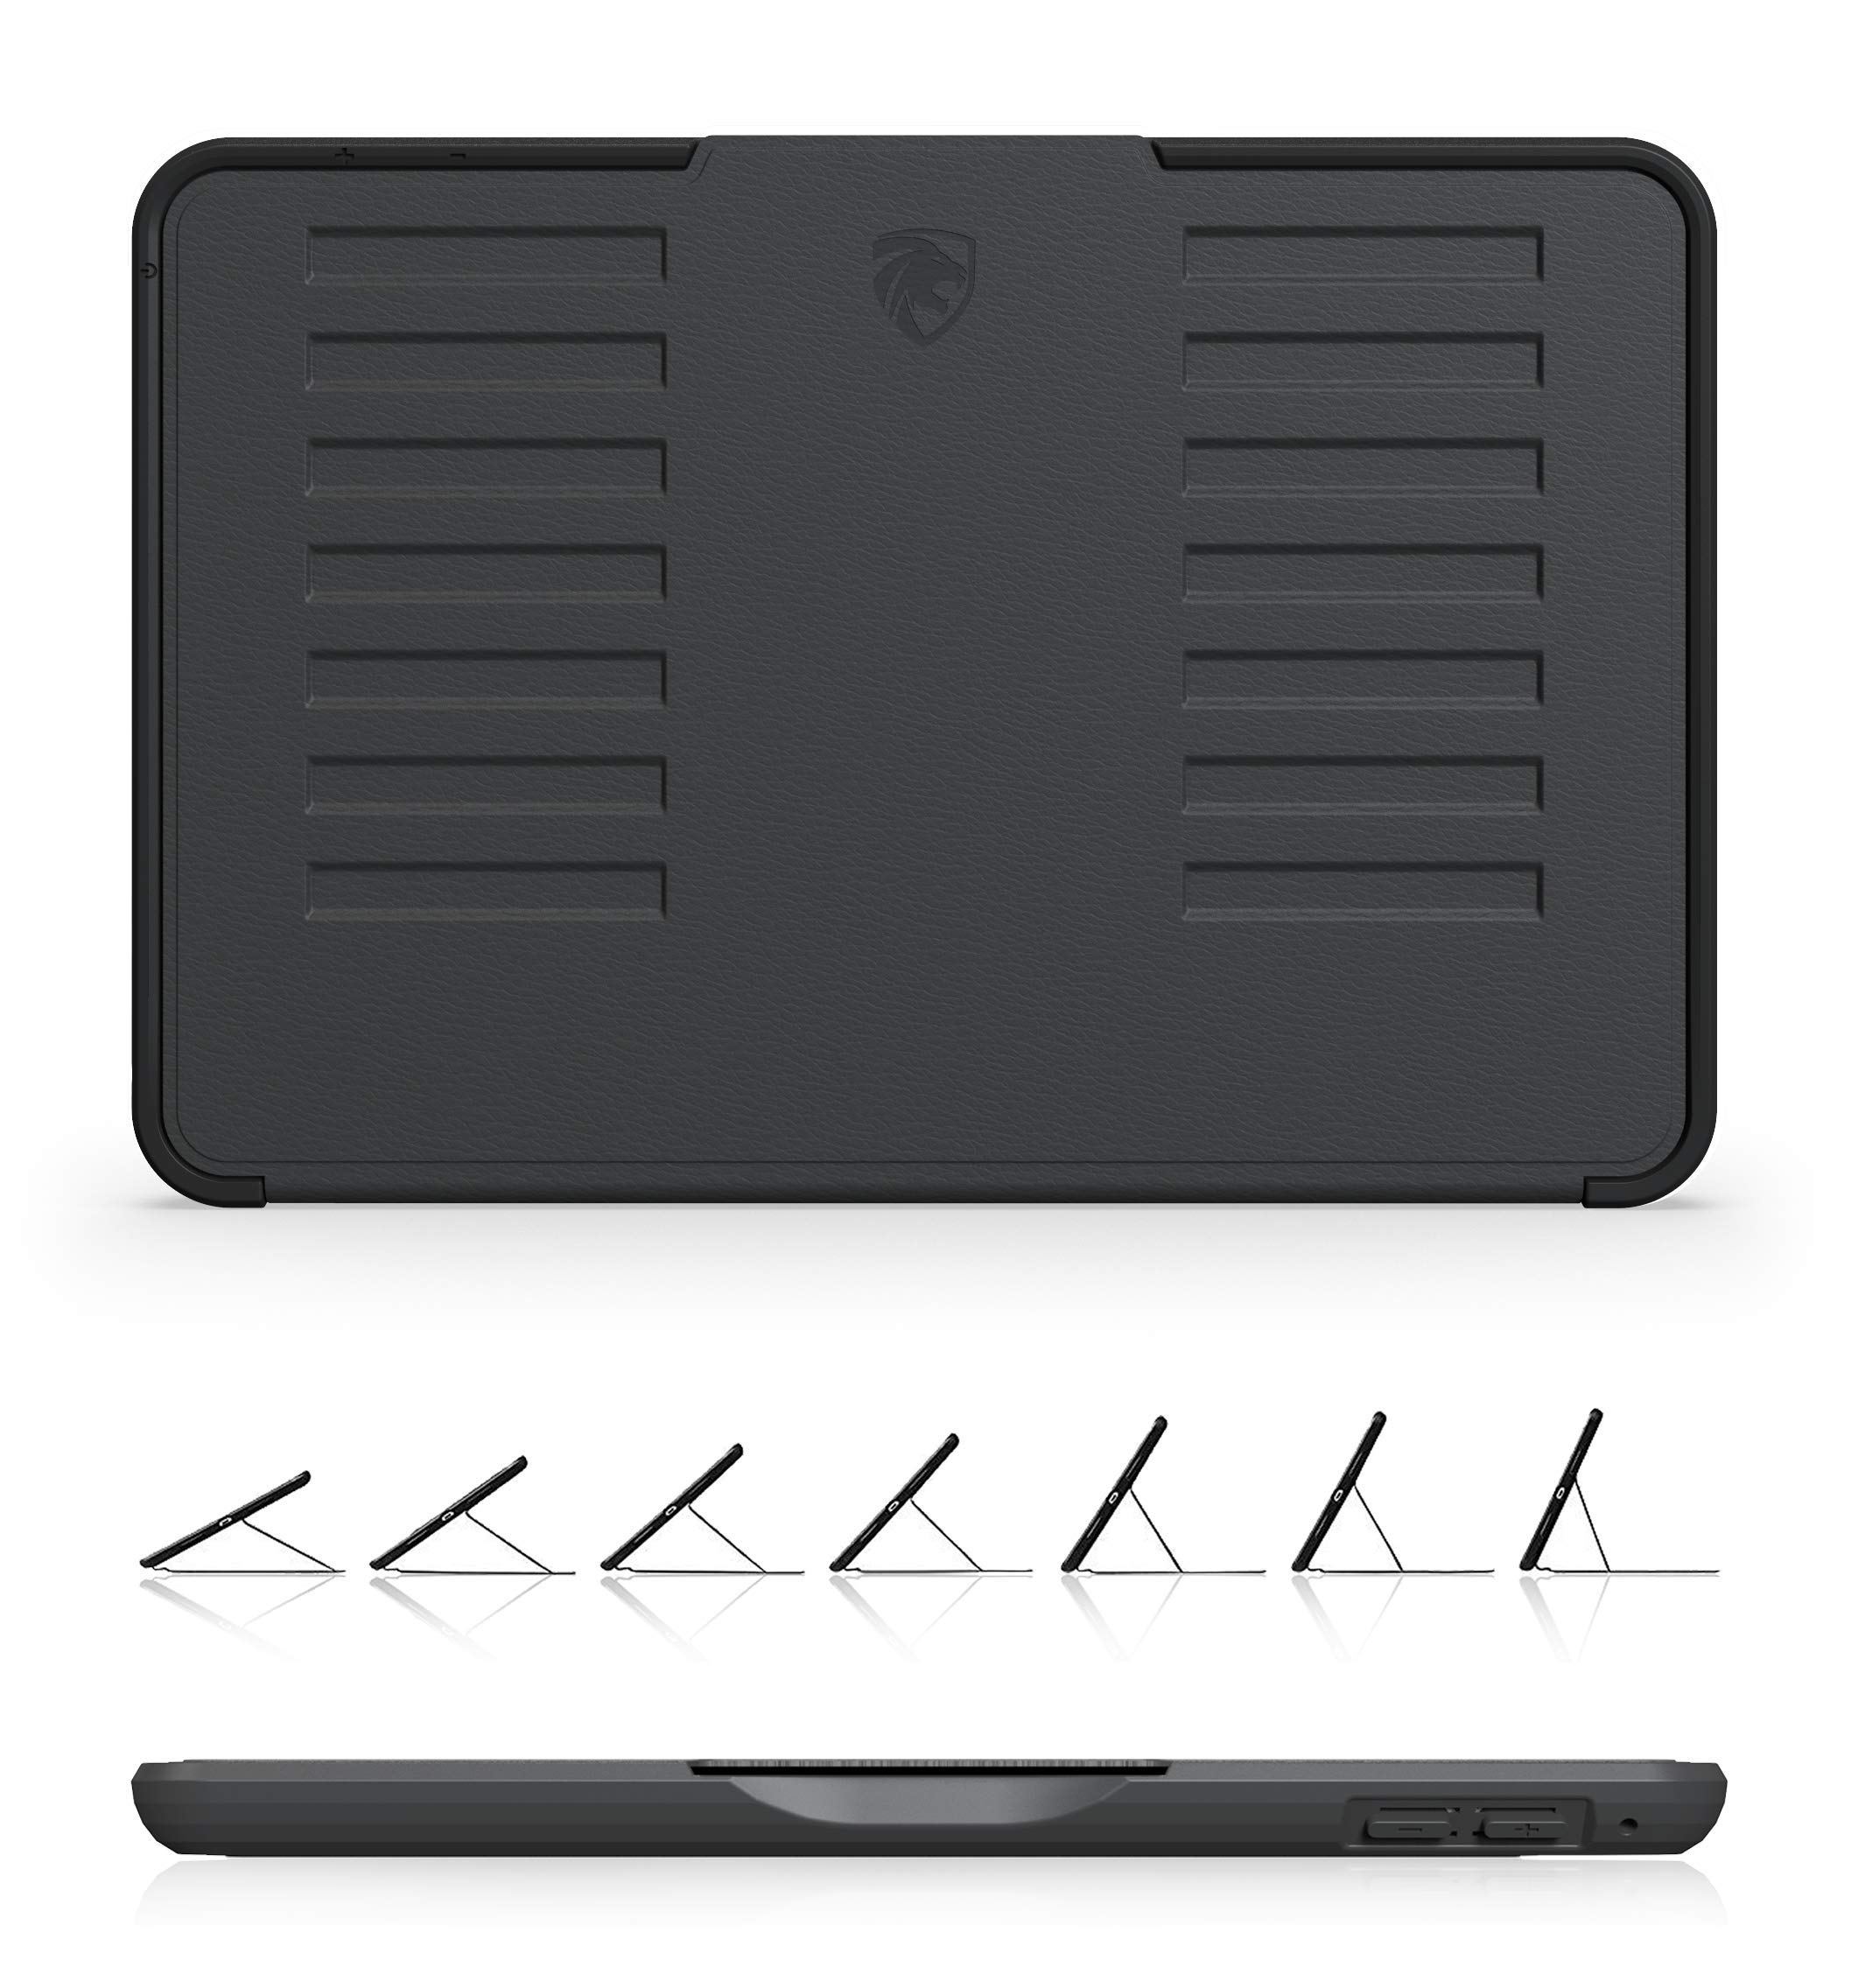 ZUGU CASE - iPad Mini 5 & 4 Muse Case - 5 Ft Drop Protection, Secure 7 Angle Magnetic Stand (Black)